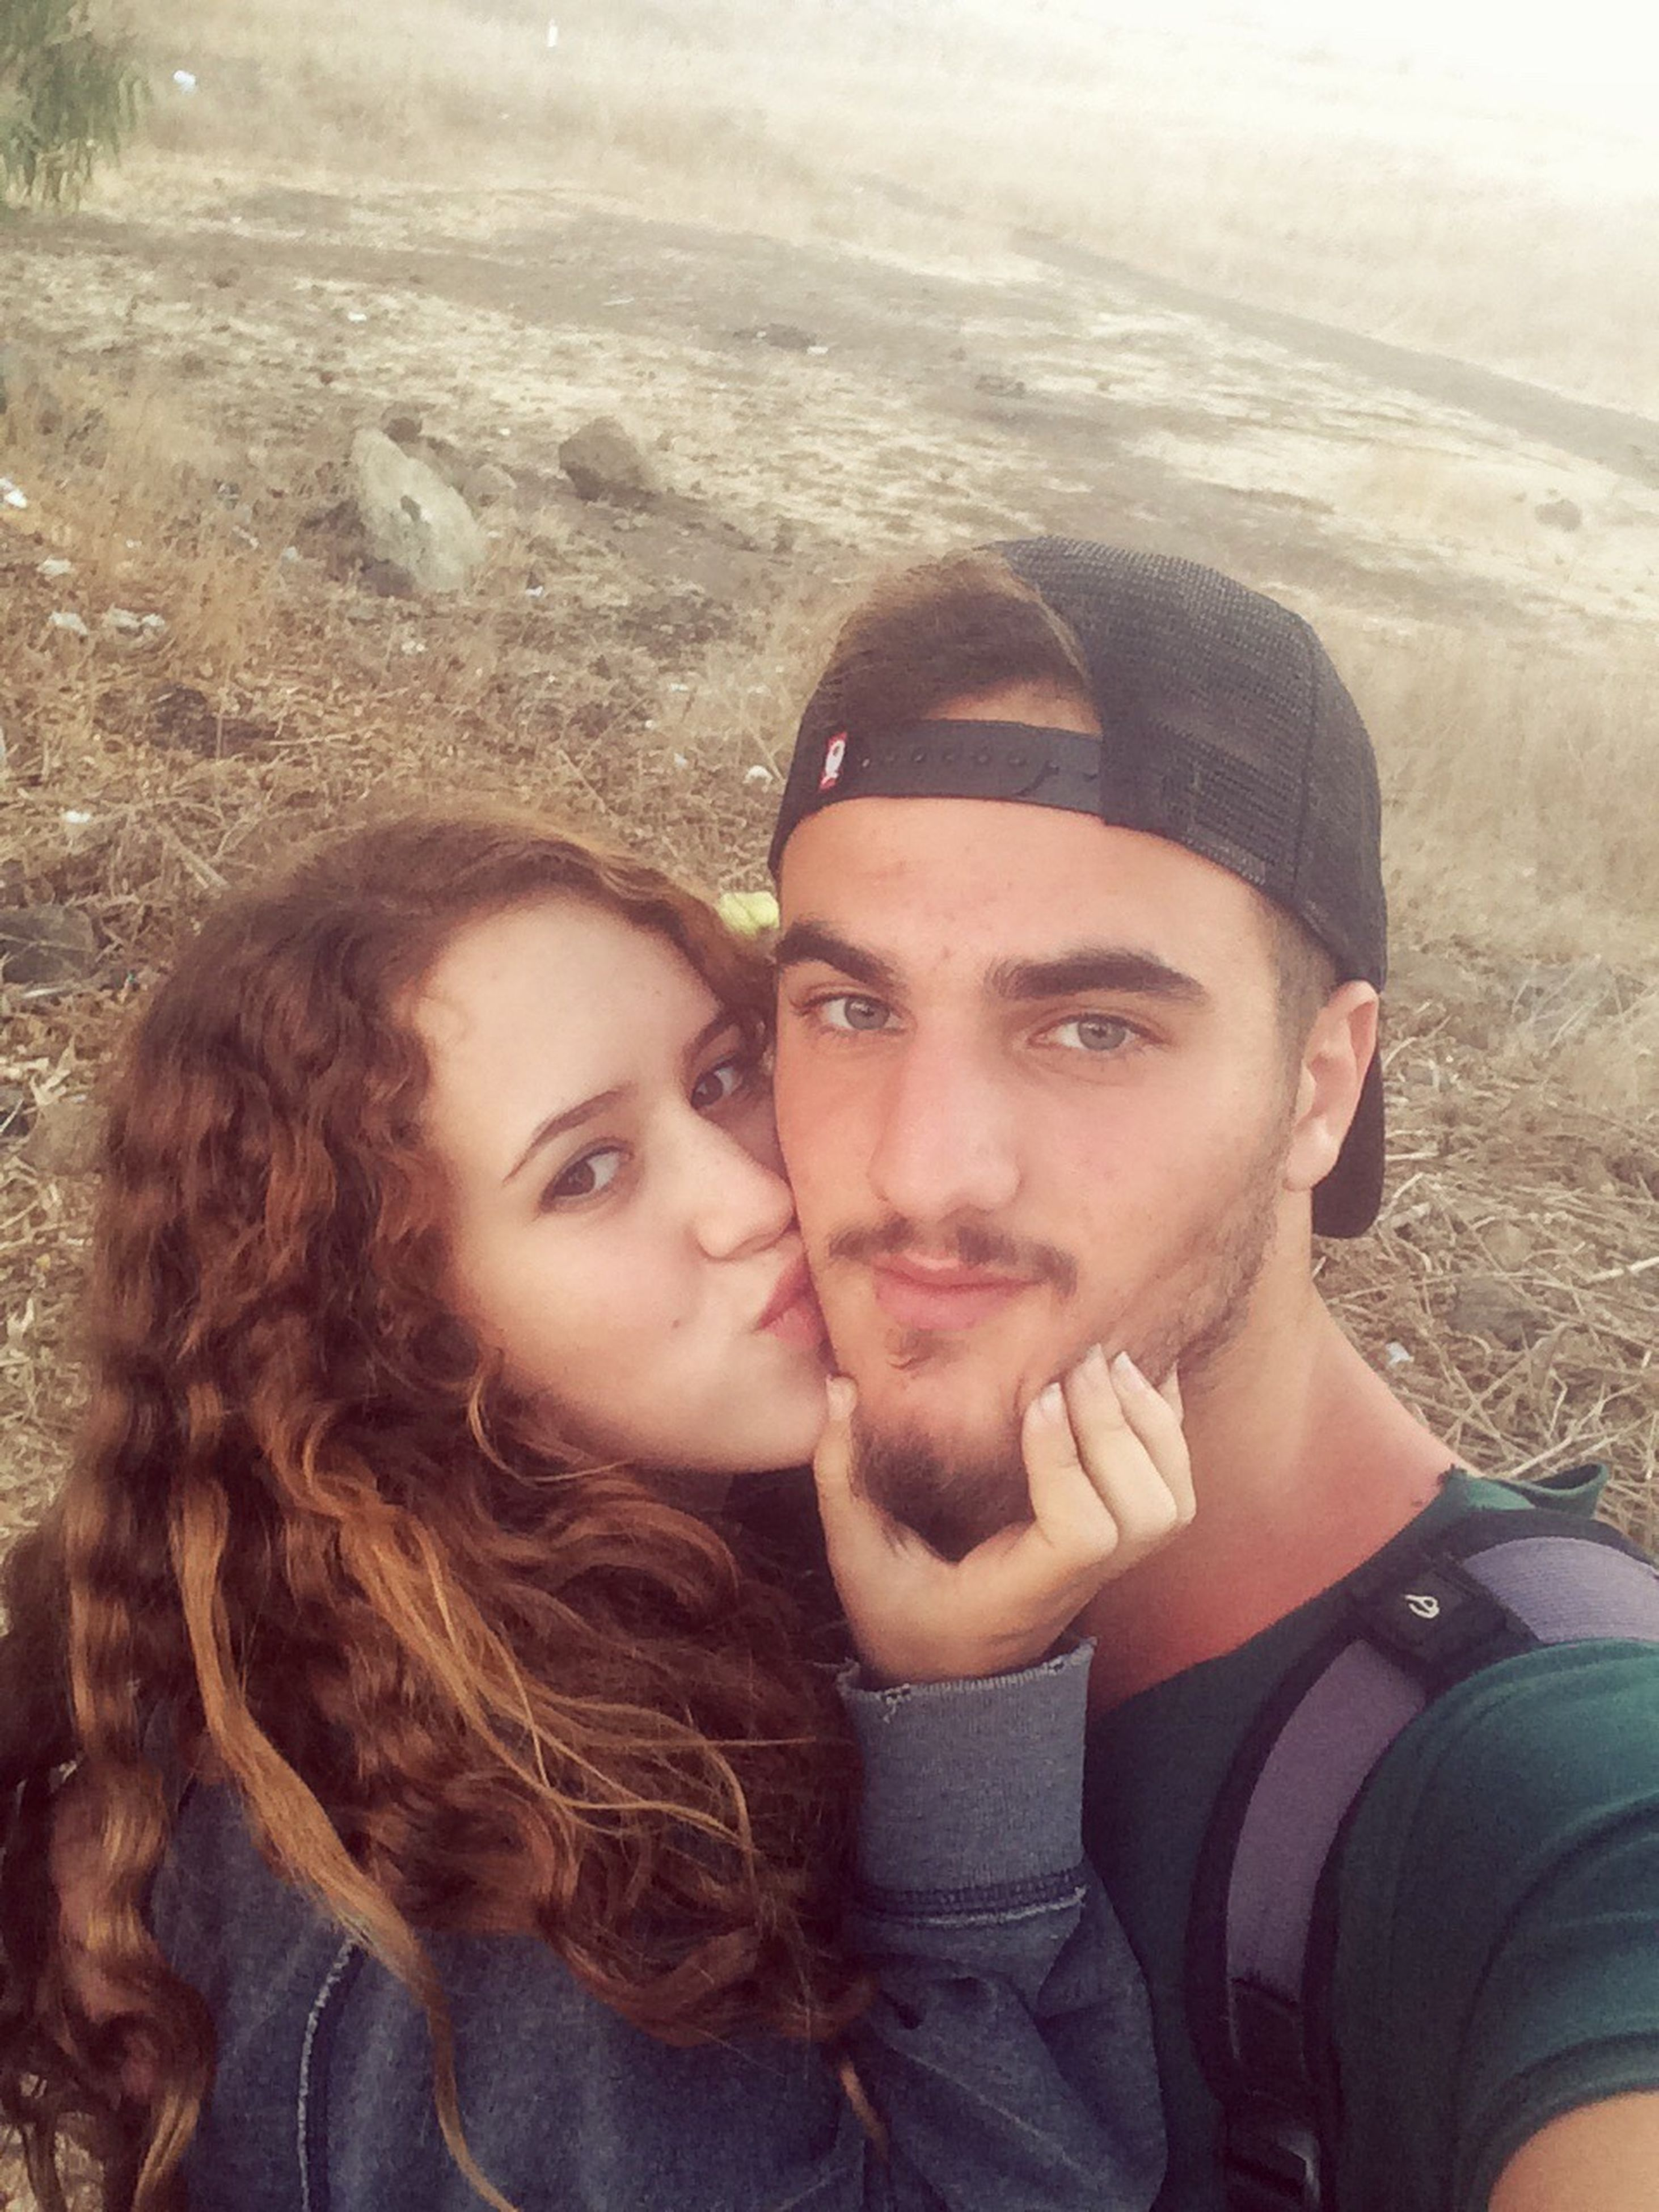 two people, young adult, portrait, young women, looking at camera, beautiful people, love, togetherness, adults only, sunlight, beautiful woman, real people, outdoors, lifestyles, beauty, happiness, beach, adult, bonding, people, day, human body part, close-up, nature